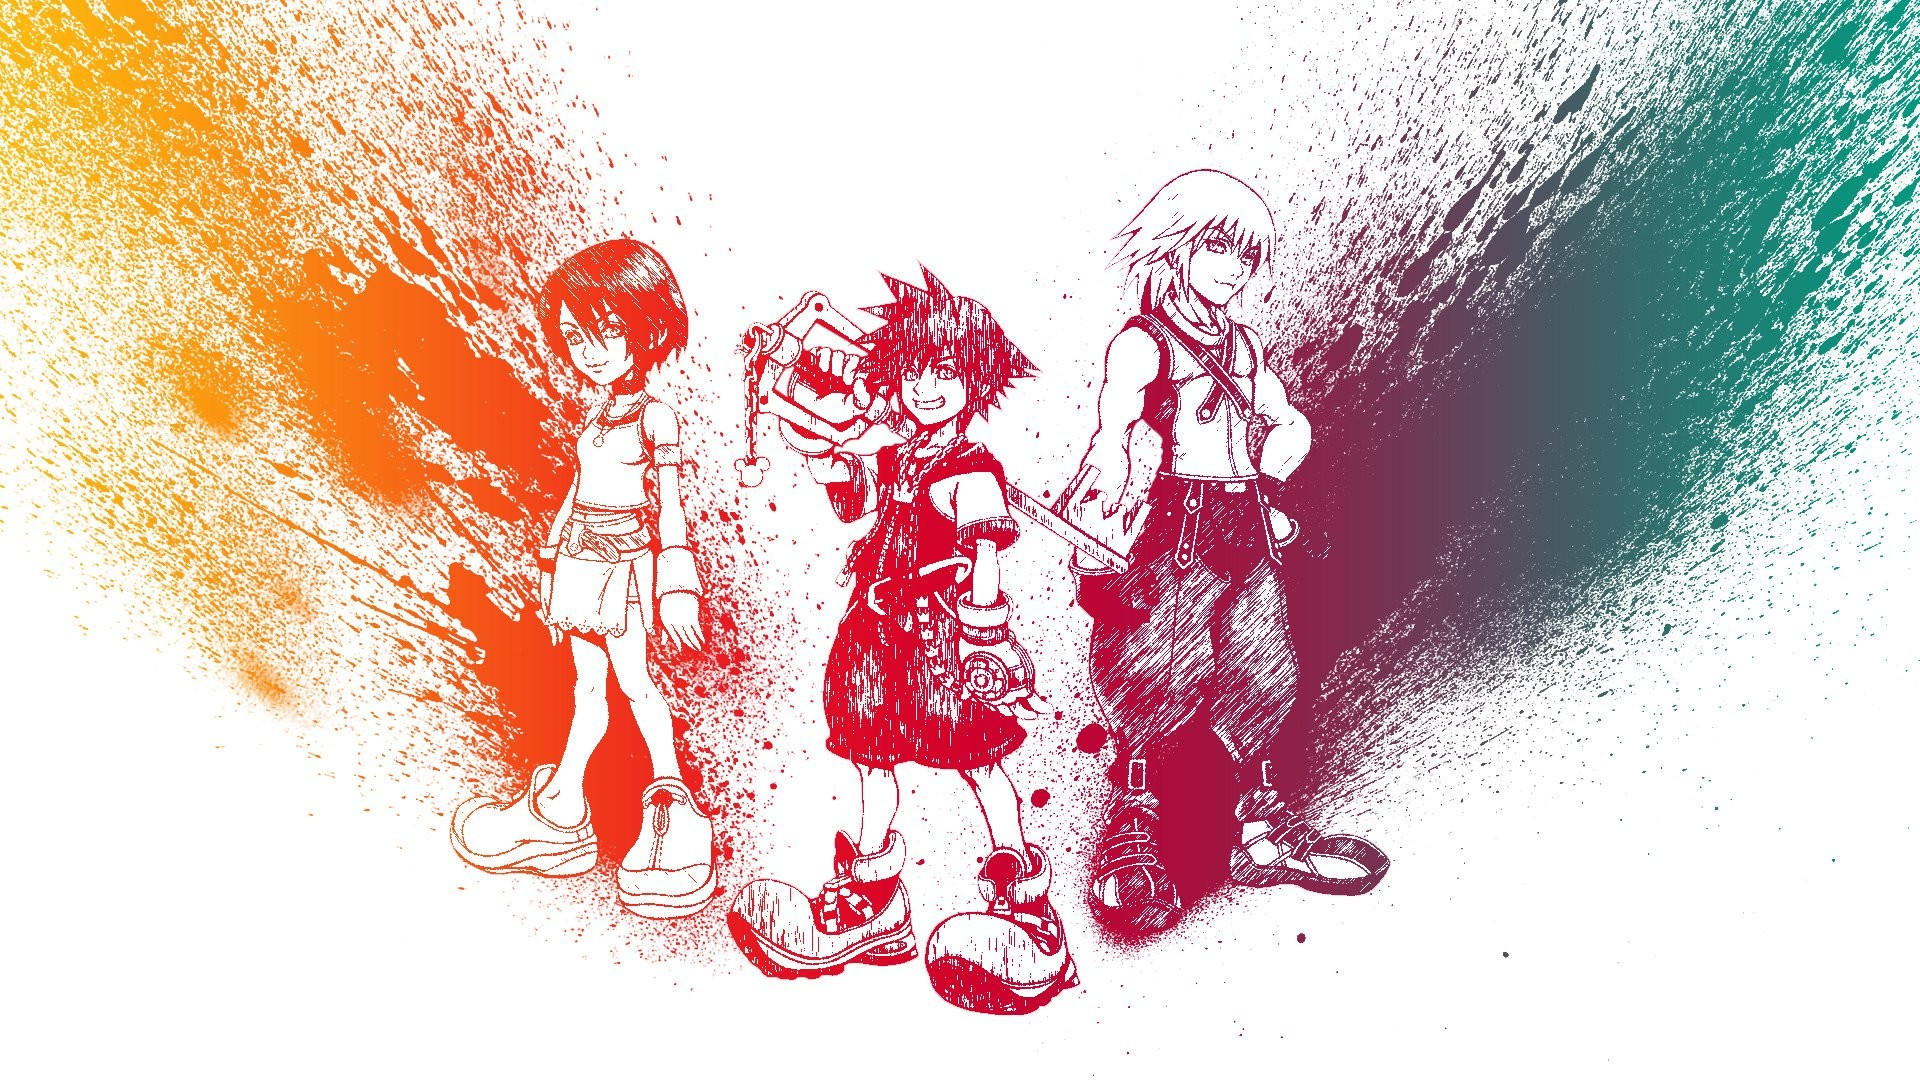 Res: 1920x1080, Kingdom Hearts, Sora (Kingdom Hearts), Riku, Kairi HD Wallpapers / Desktop  and Mobile Images & Photos